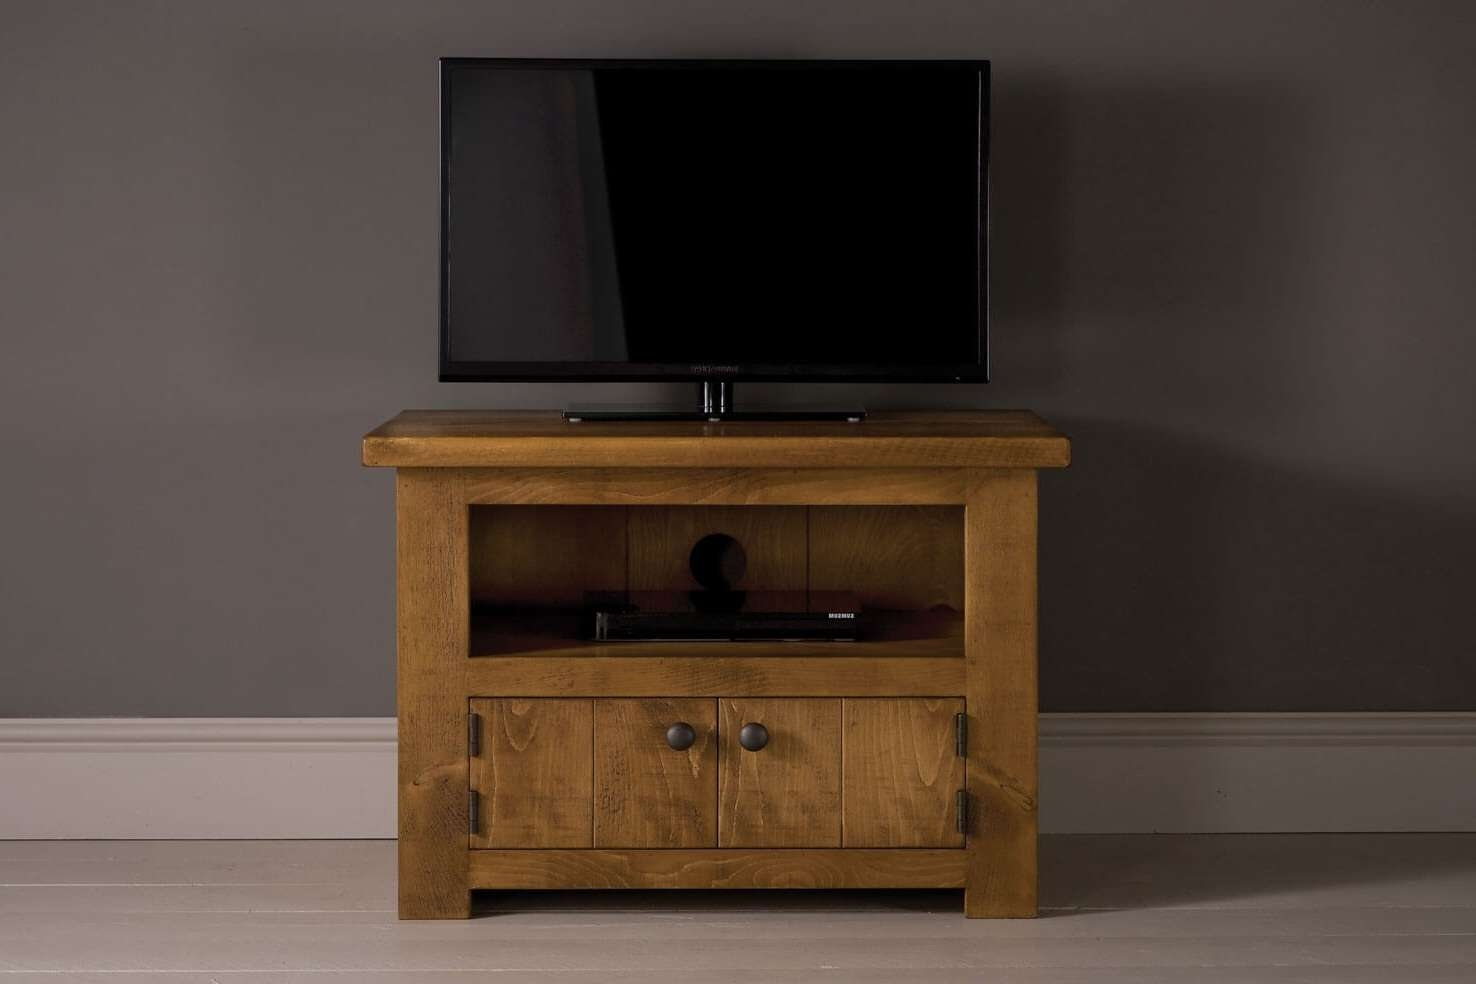 Rustic Tv Cabinets, Stands & Units | Solid Wood & Oak | Indigo Throughout Small Tv Cabinets (View 14 of 20)